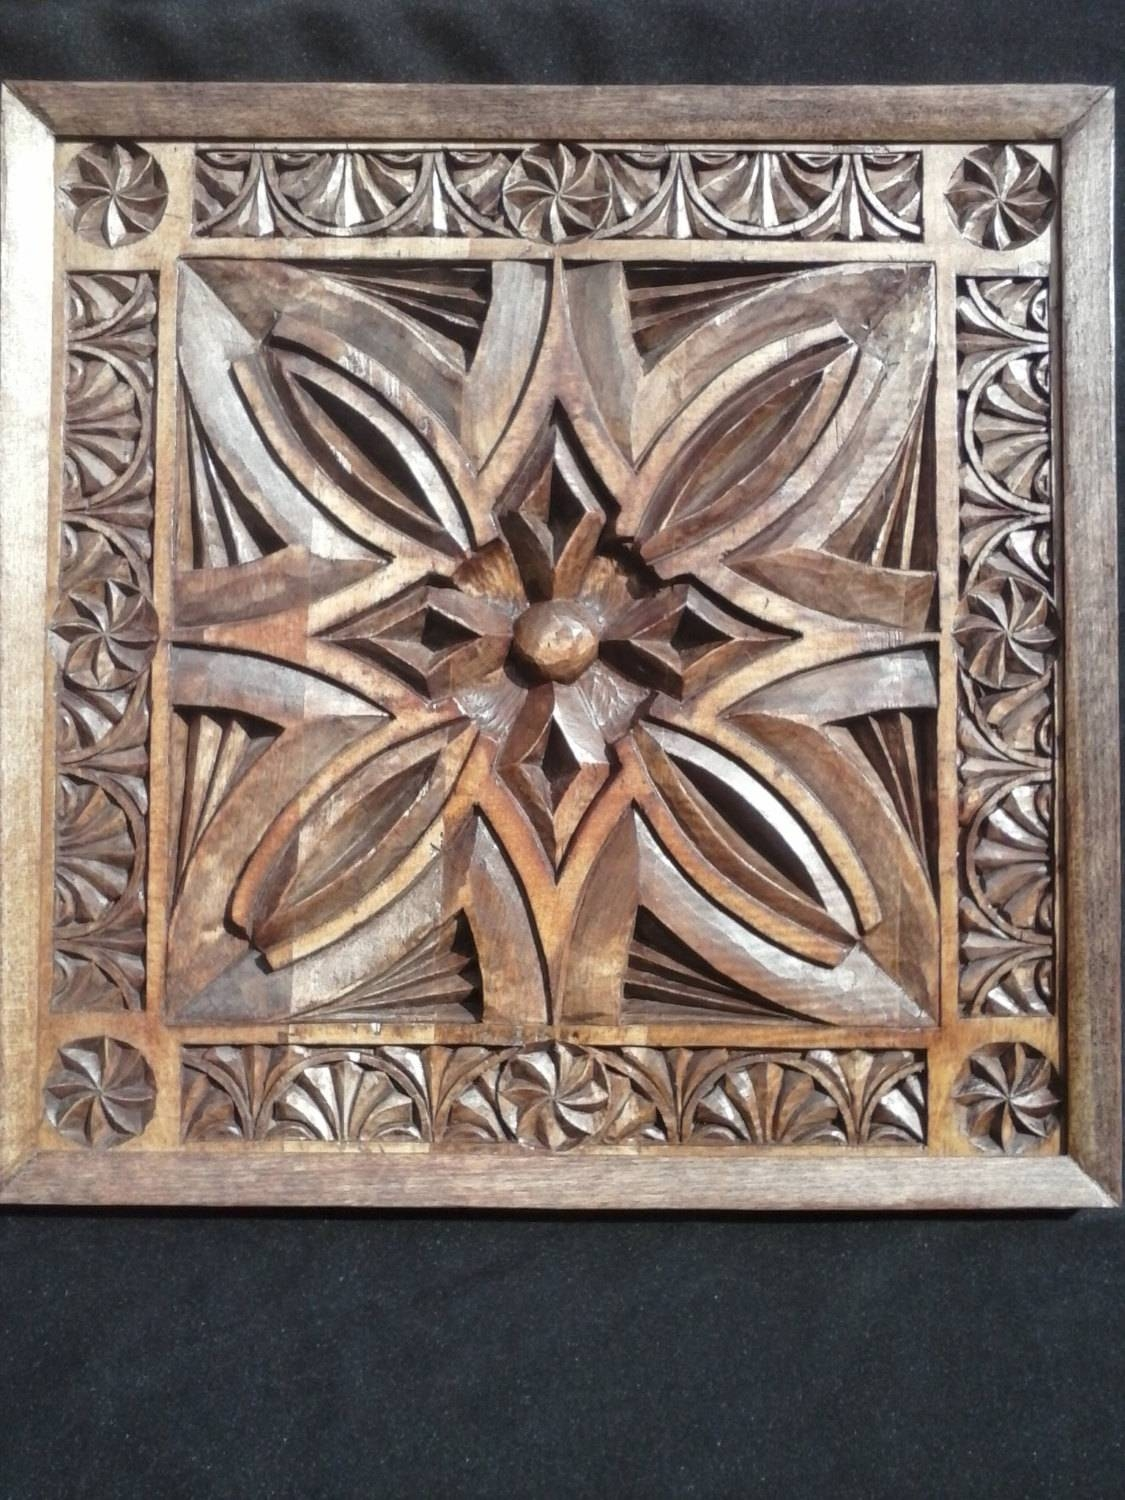 Wood Carving Wall Art Panel Chip Carvedhand In Tulip Wood And Throughout  Most Recently Released Wood